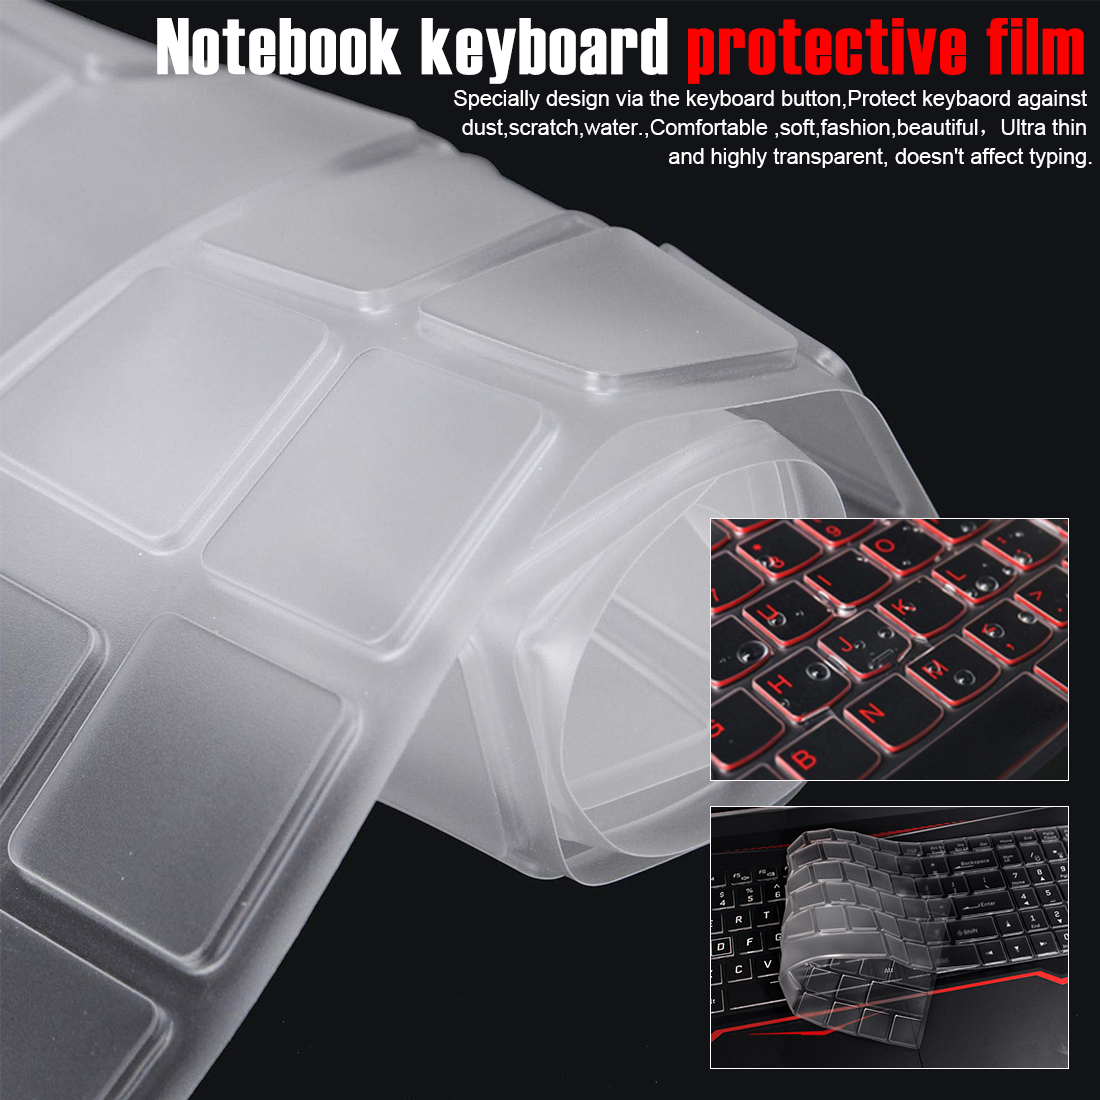 Keyboard Cover Waterproof Laptop Protect Film For MSI GE62 GE72 GS60 GS70 GT72 GL62 PE60 GS63 Notebook Soft Close Computer